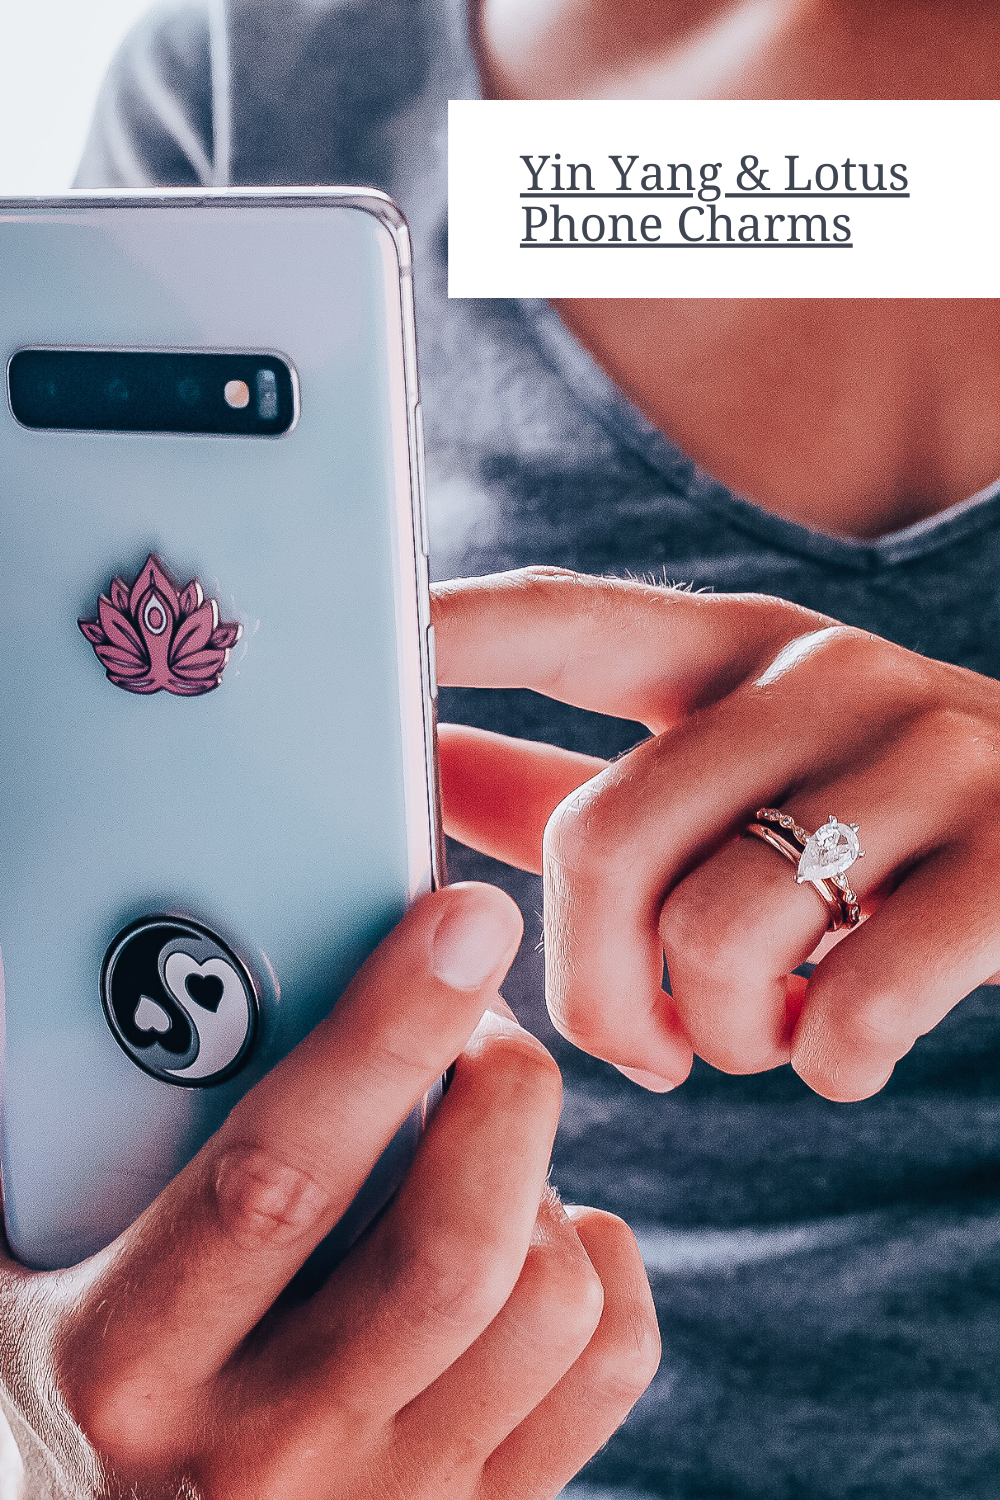 Spiritual Charms 2 in 1 Yin Yang /& Lotus Yoga Harmony /& Peace Metal Stickers 1 x 1 Namaste Laptops /& Notebooks Show Balance and Tranquility Easy to Stick on and Peel Off Usable On All Phones